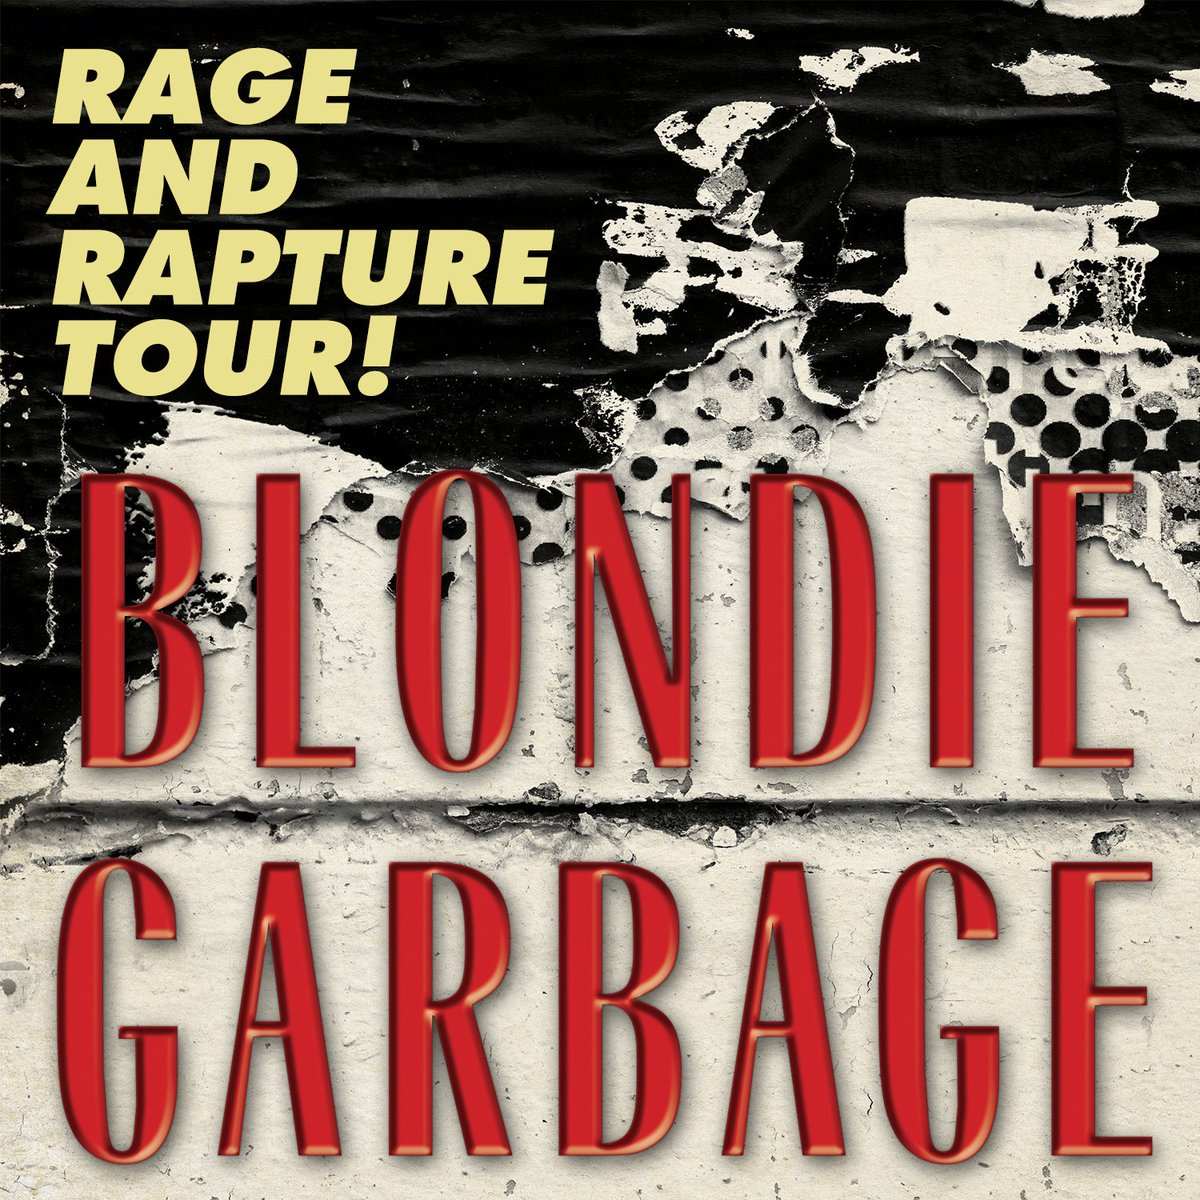 Blondie And Garbage Official Tour